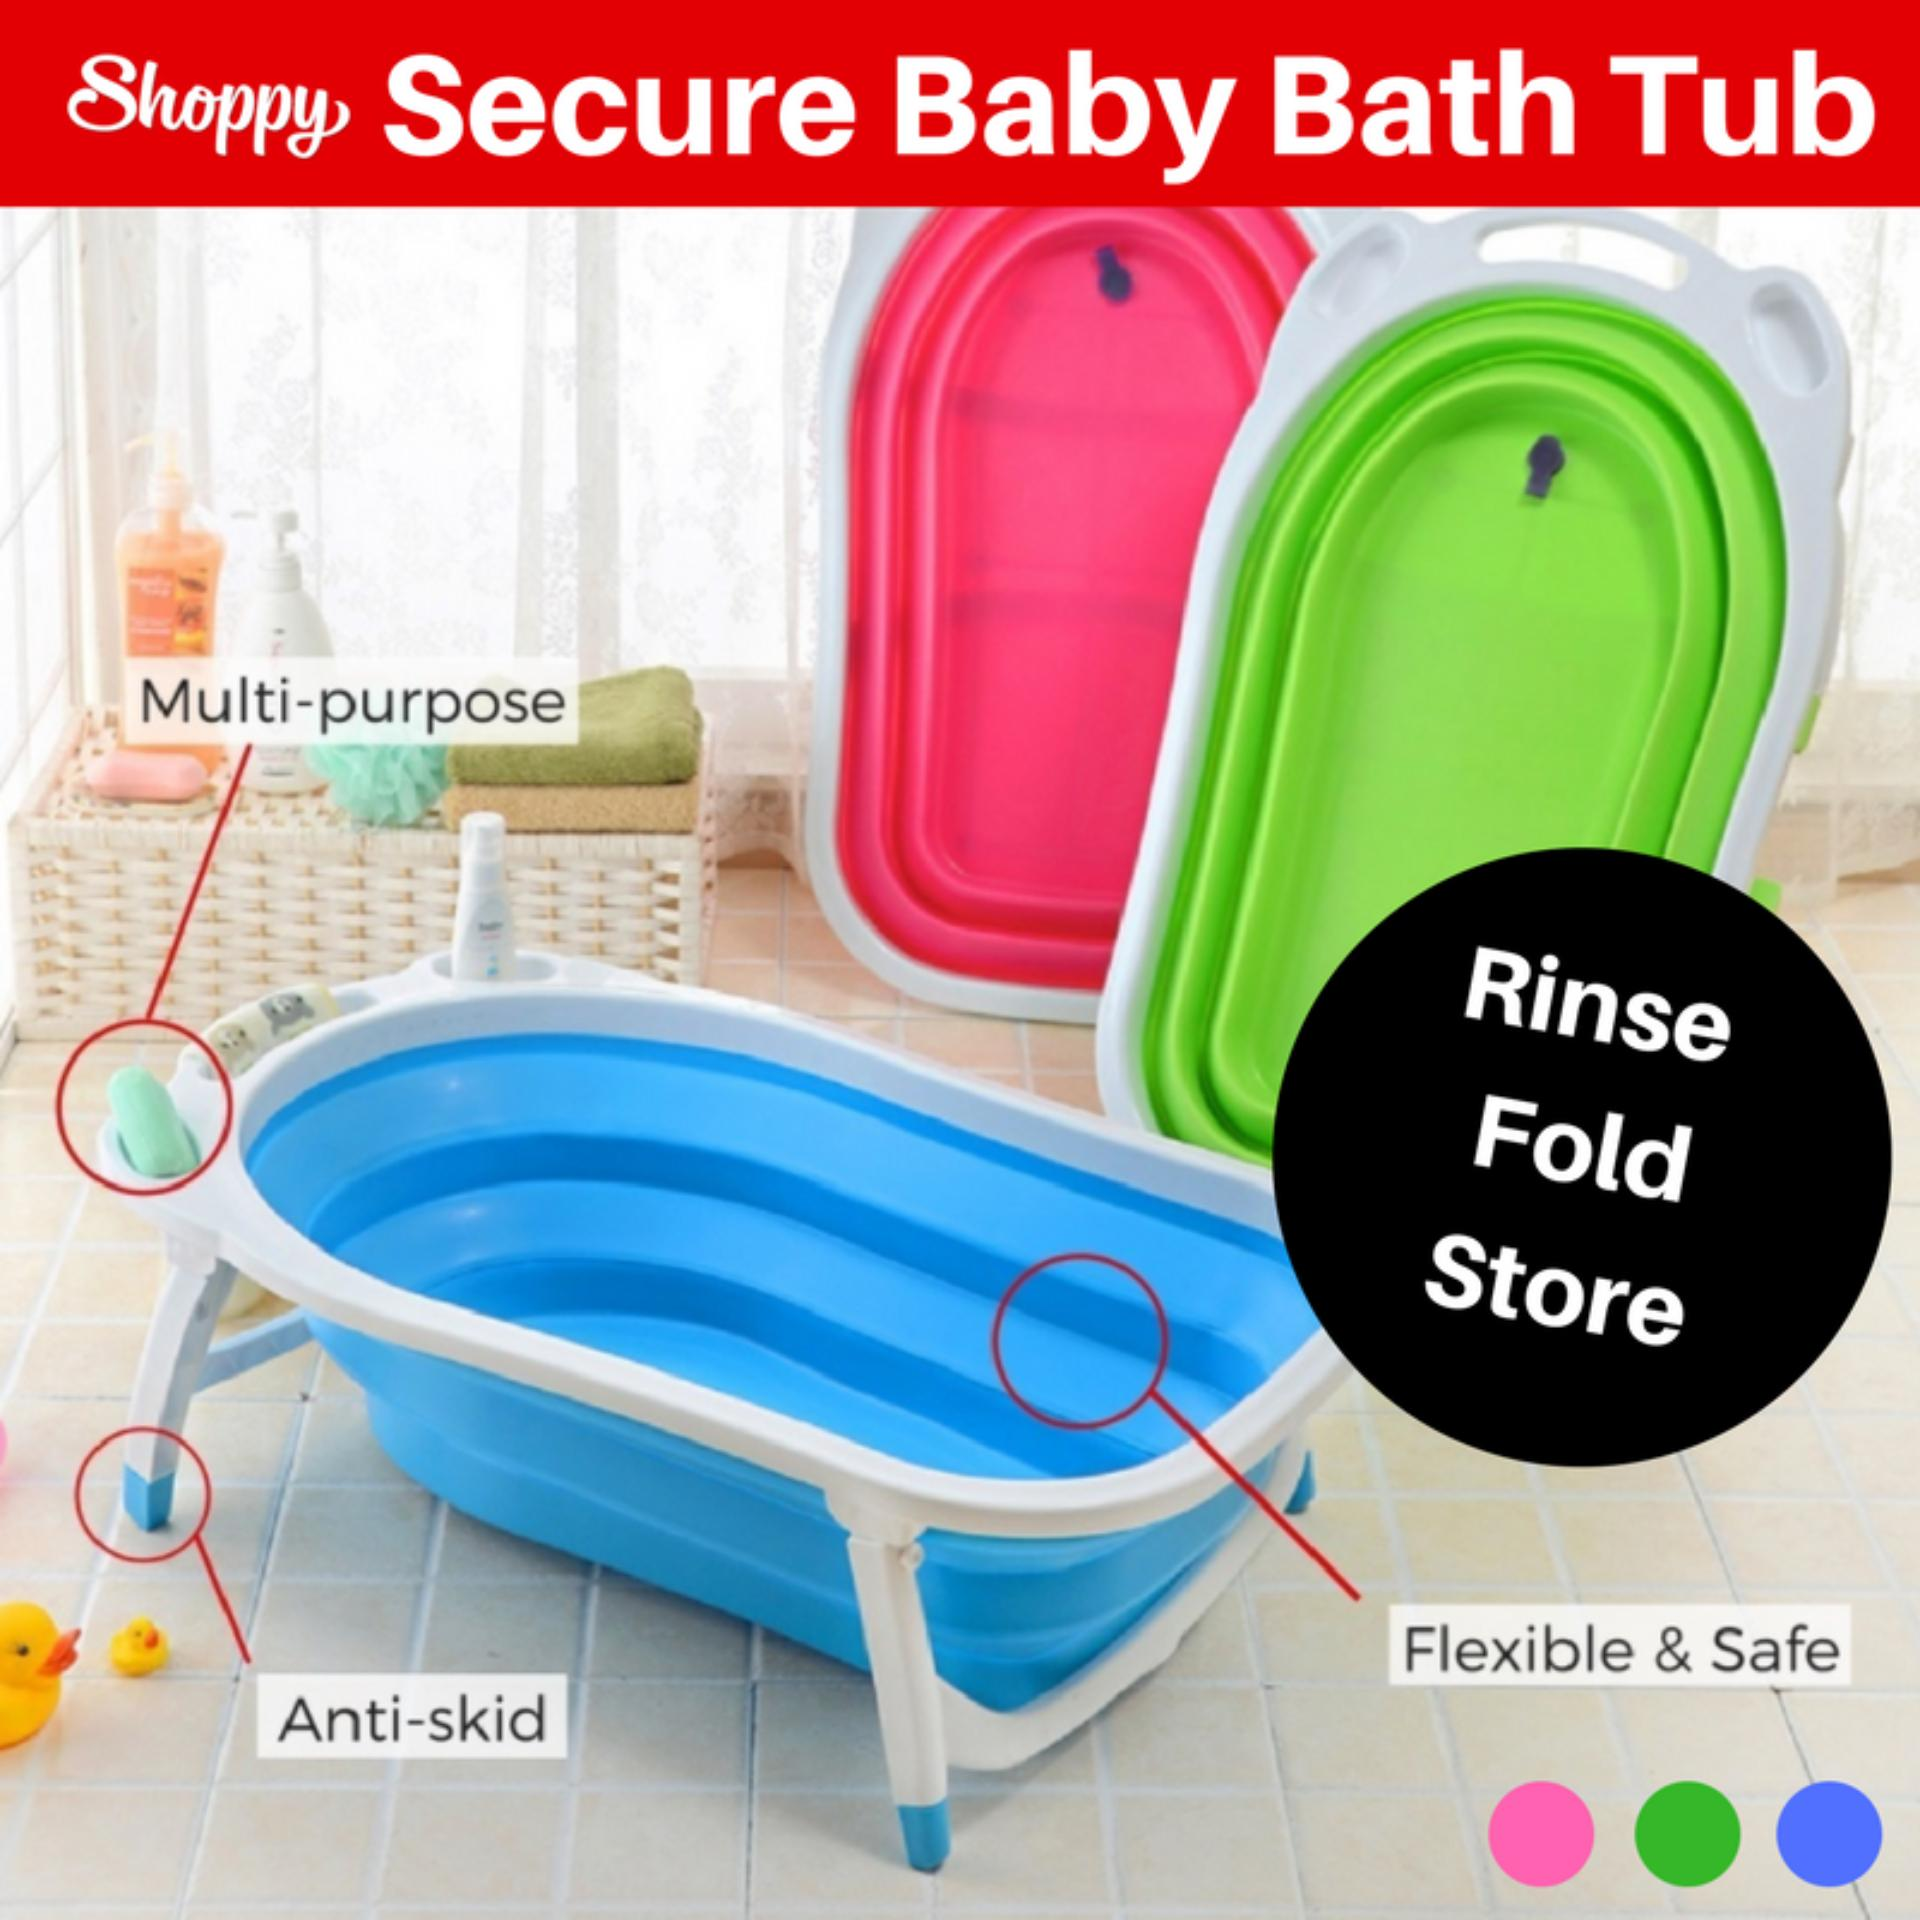 Top 10 Shoppy Foldable Space Saving Secure Baby Bath Shower Tub